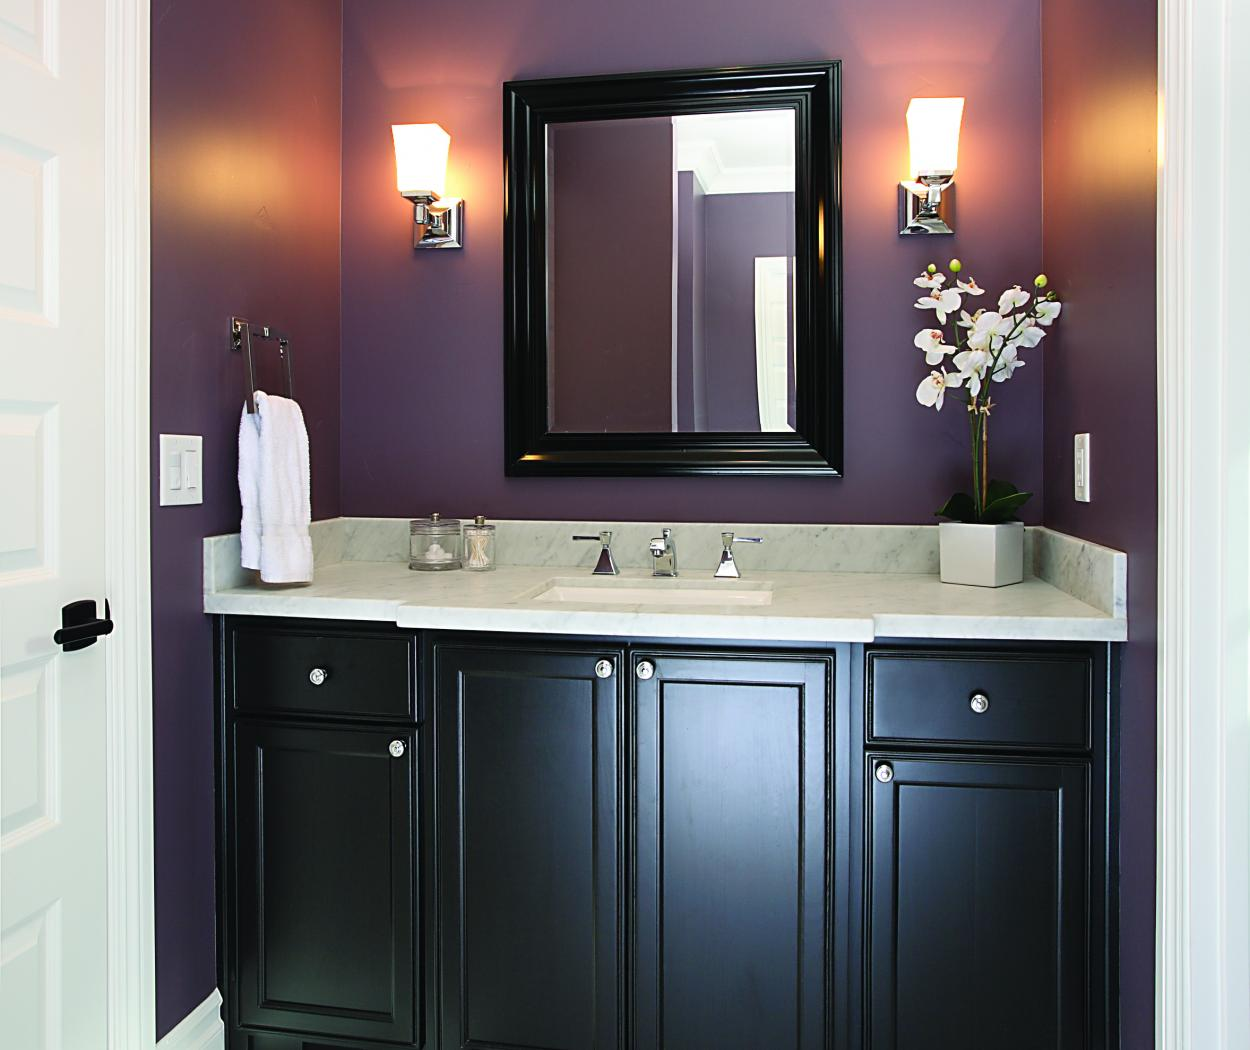 Transitional Bathroom Vanity Stained in Dark Espresso with a Beautiful Marble Counter Top and Polished Chrome Hardware